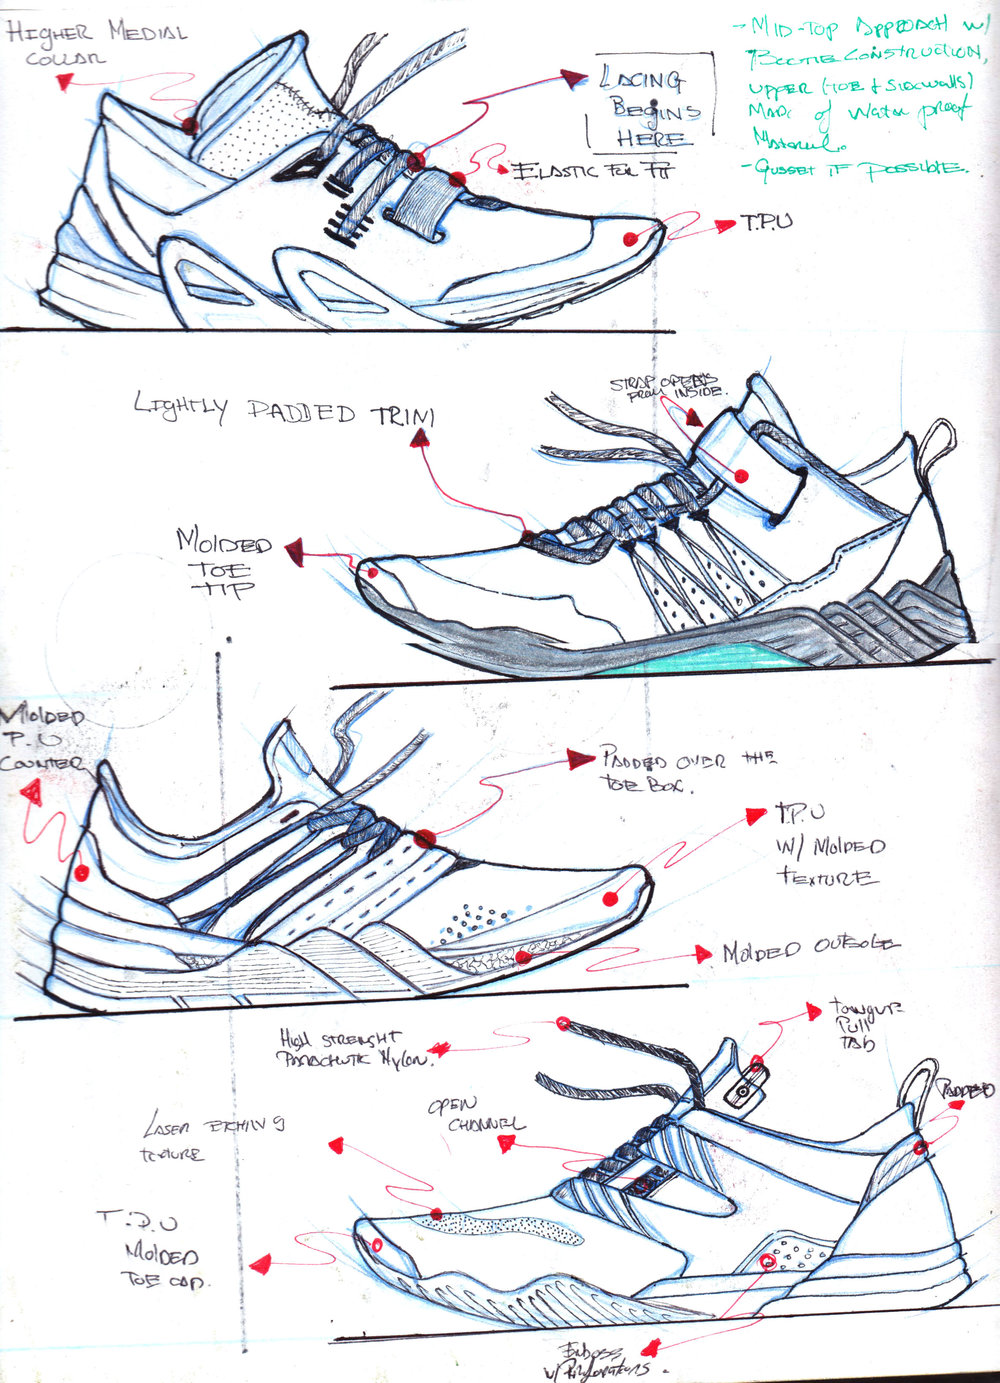 Footwear sketches 17 2.jpeg